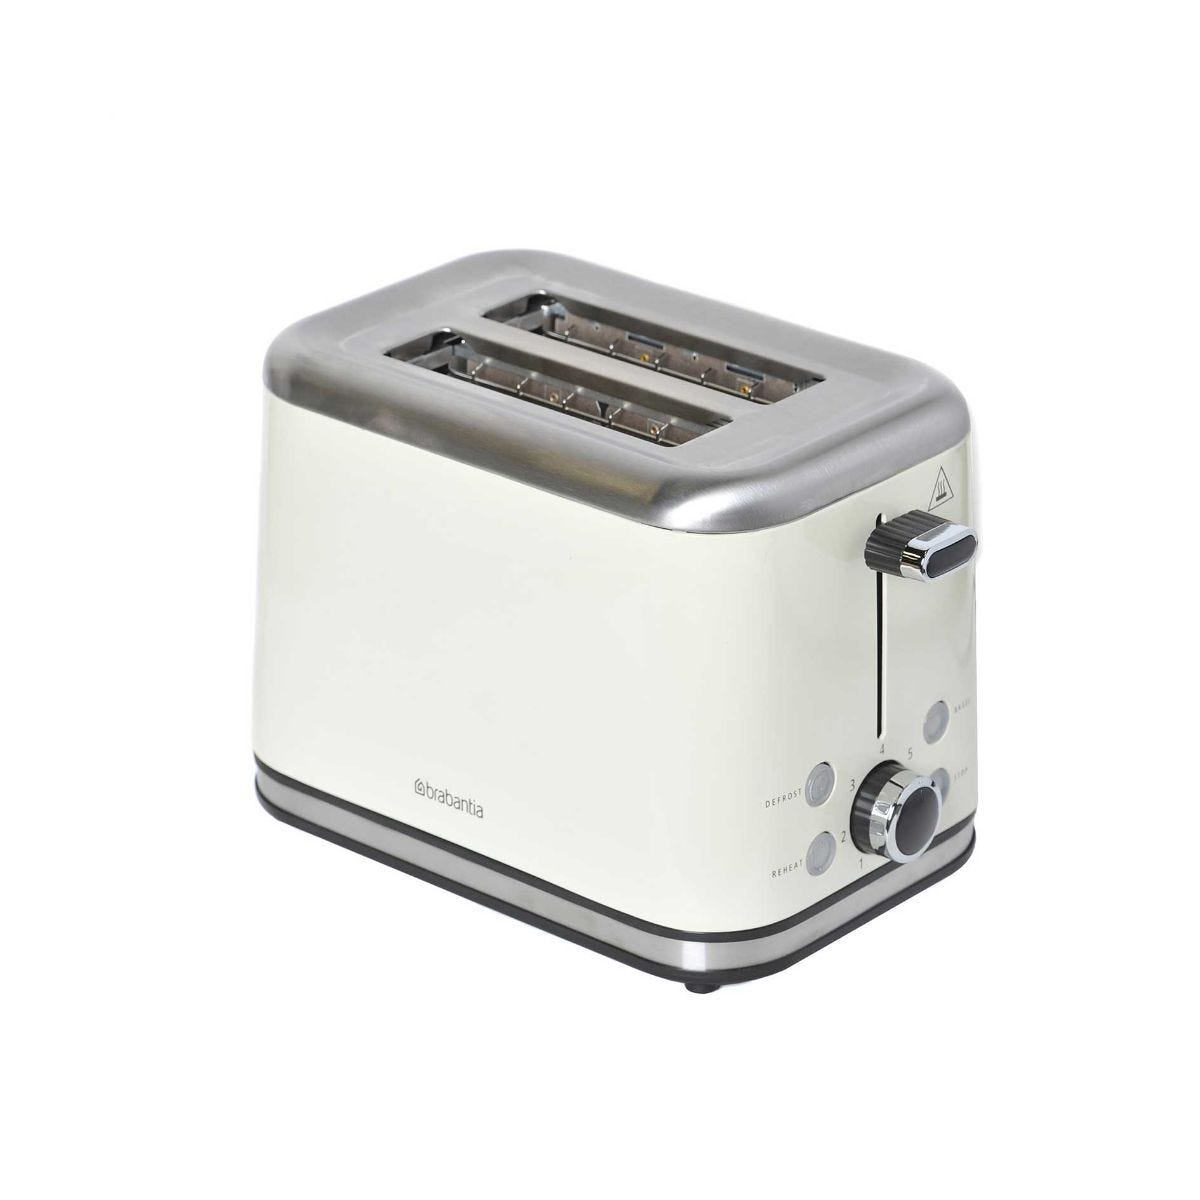 Igenix 2 Slice Toaster Almond Brushed Stainless Steel